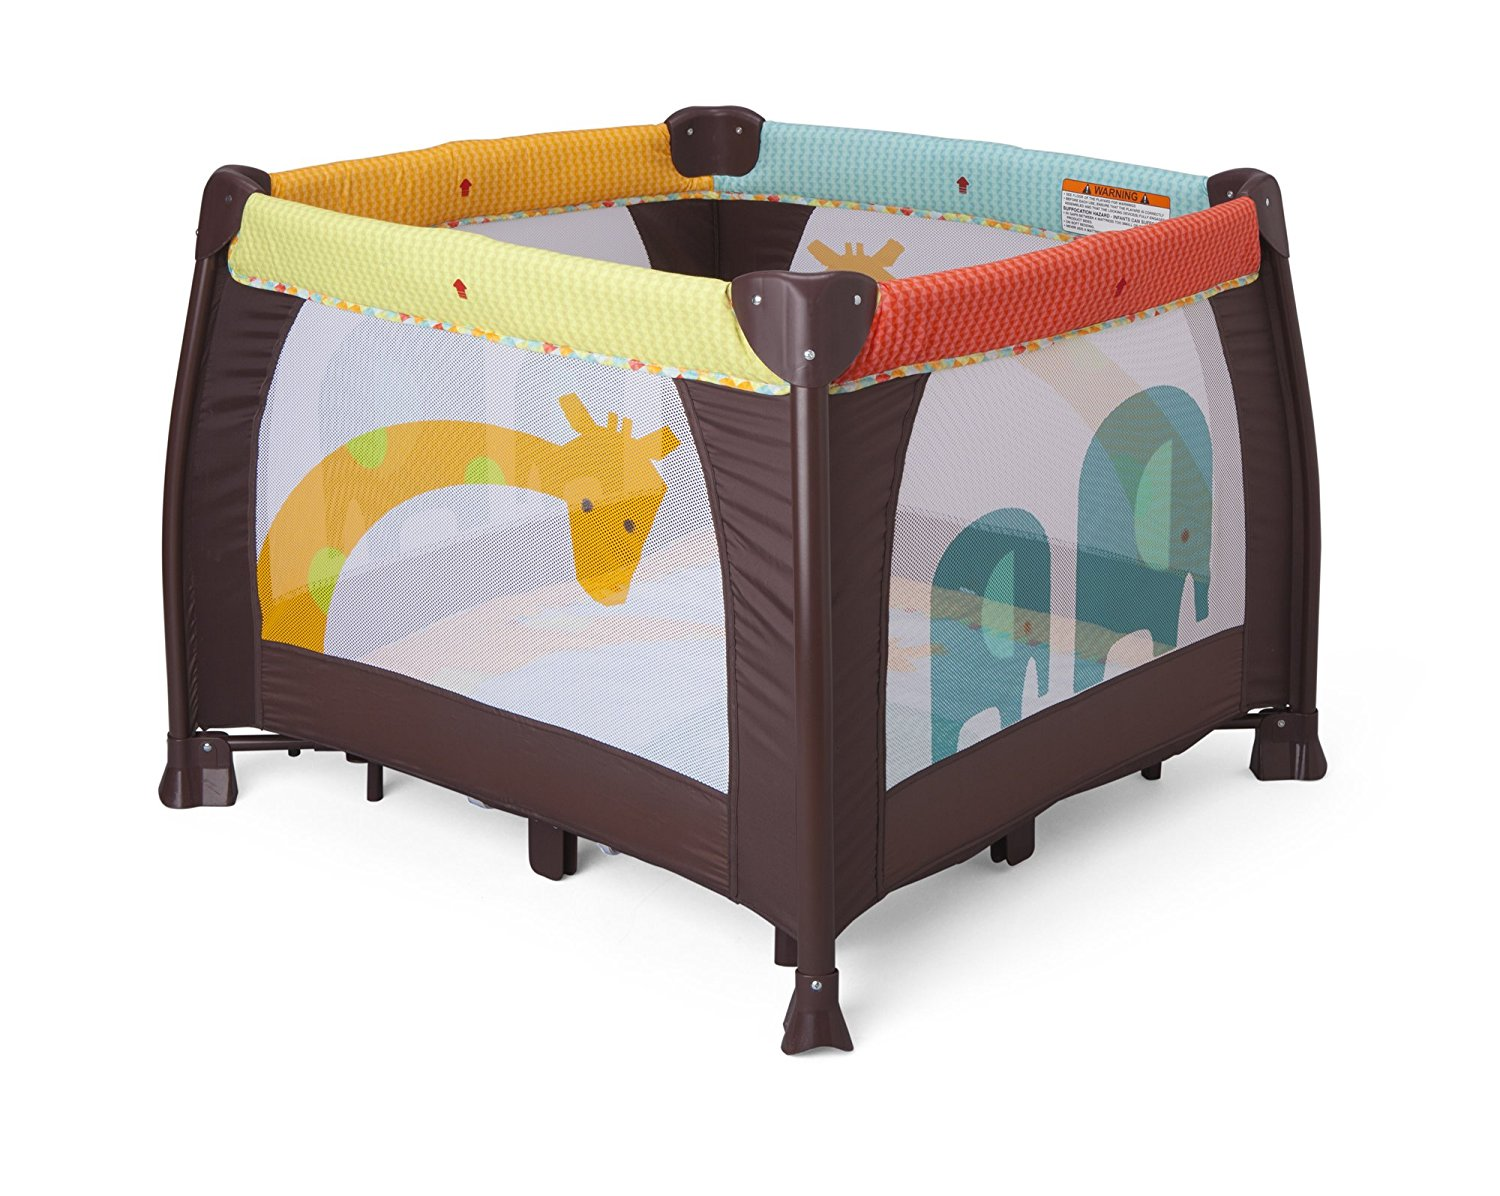 delta children playard, zoo animals playard, best playpen for babies, playben for babies, baby play yard